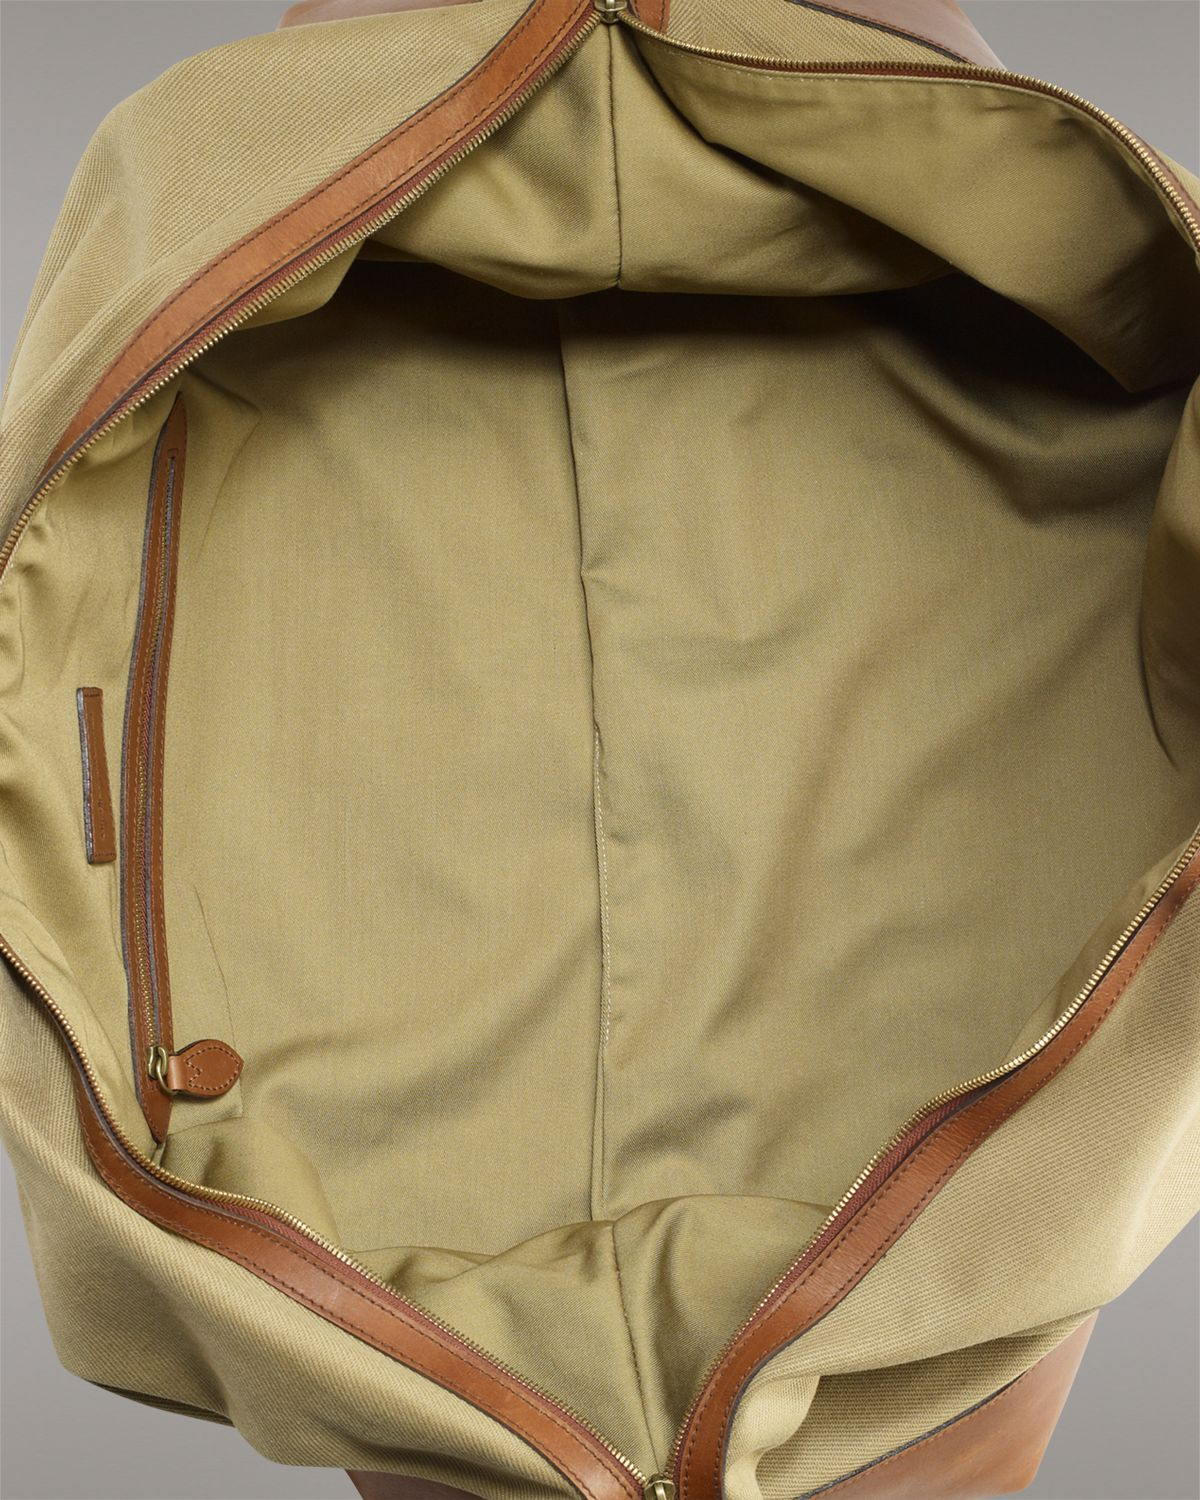 bacd870a90 ... norway lyst ralph lauren polo canvas duffle bag in natural for men  4390d 8b0e4